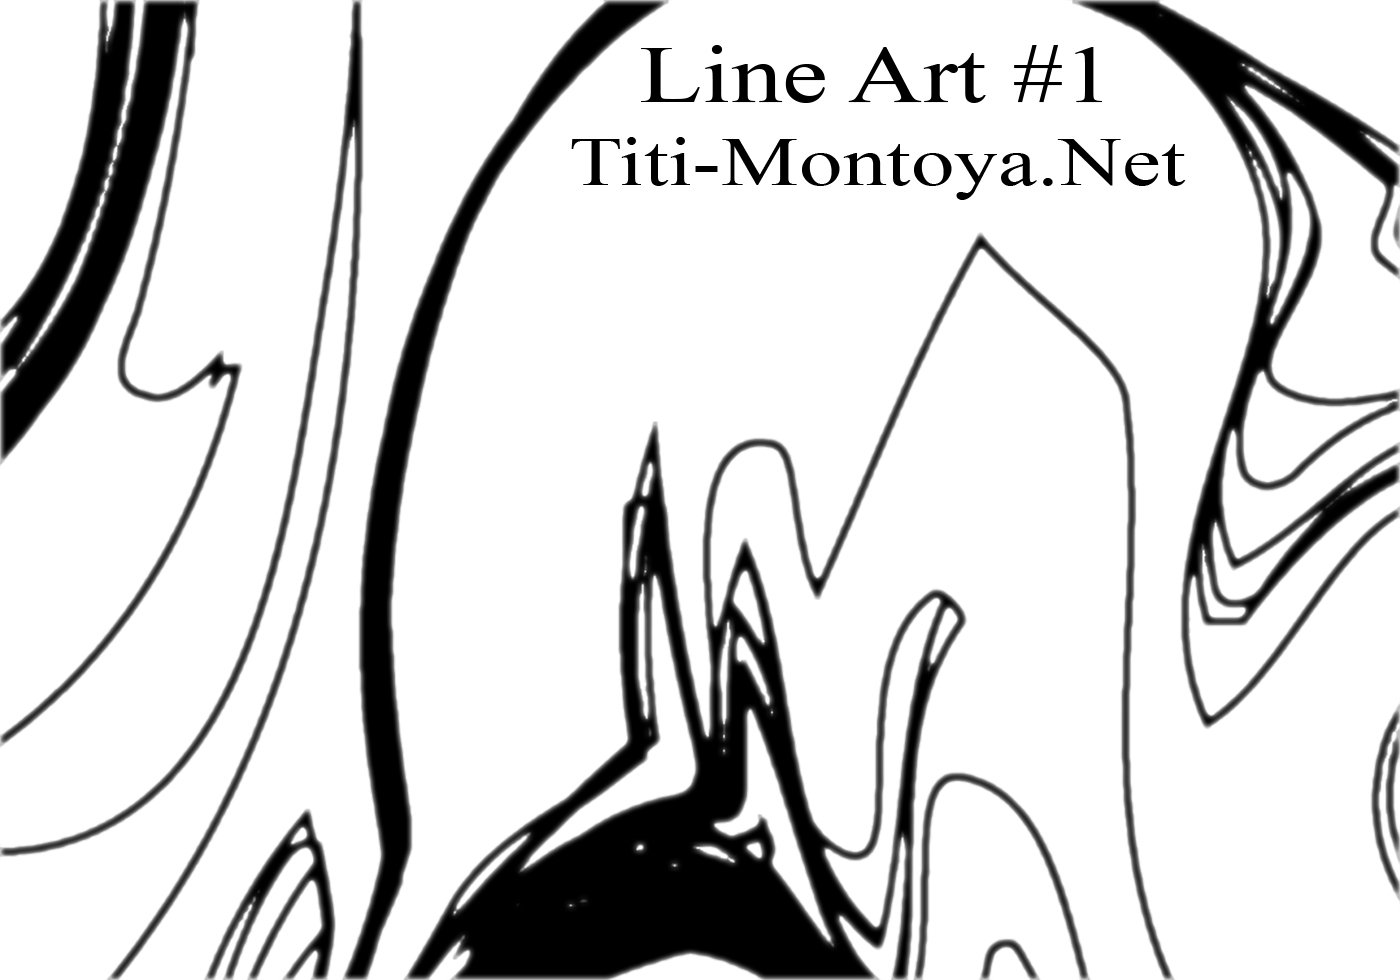 Line Art Brushes Photo : Line art abstract brushes